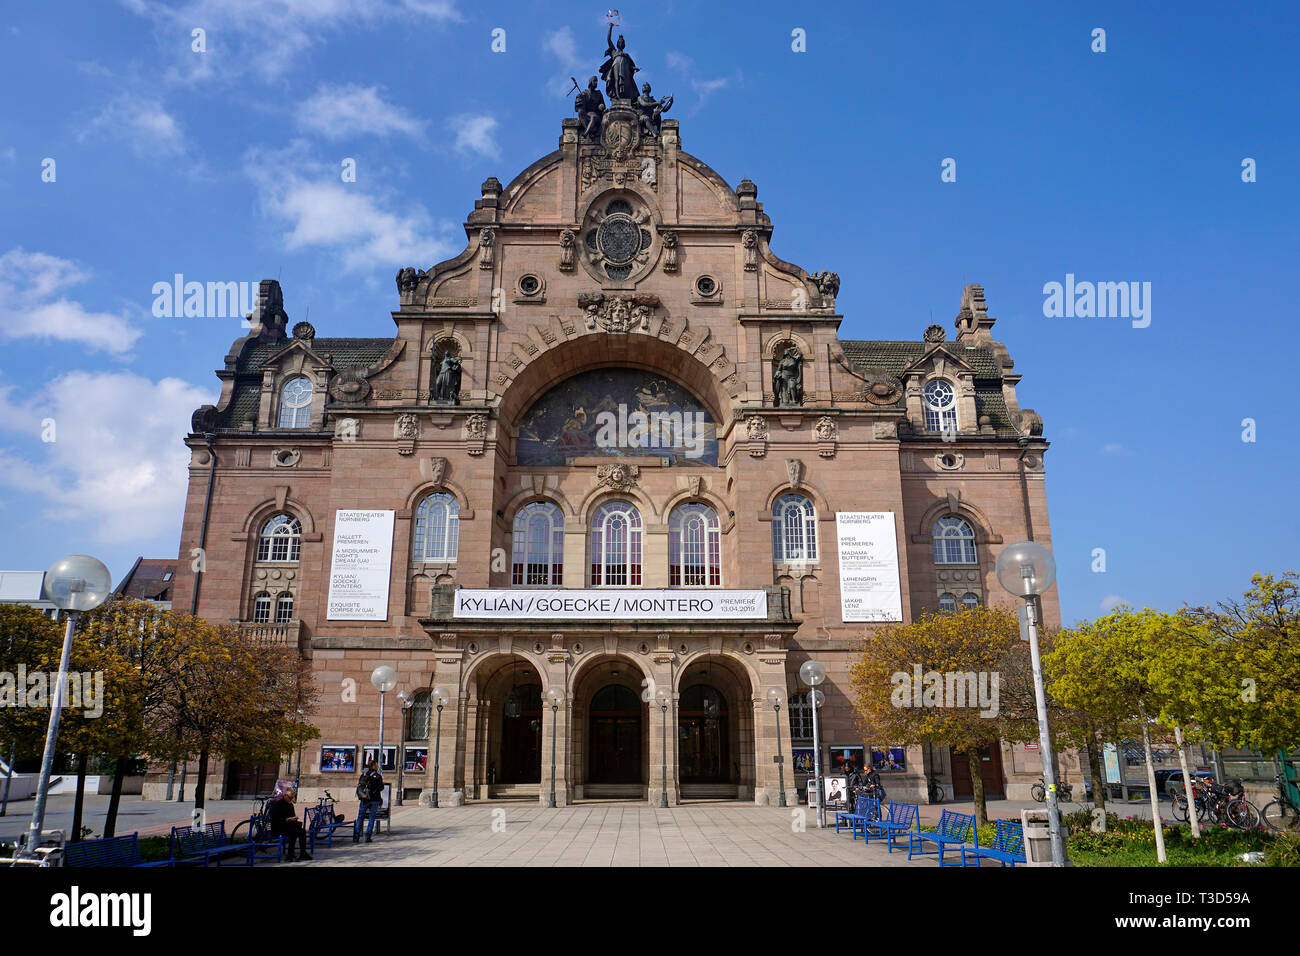 Opera house and state theatre, art nouveau style, Nuremberg, Franconia, Bavaria, Germany Stock Photo